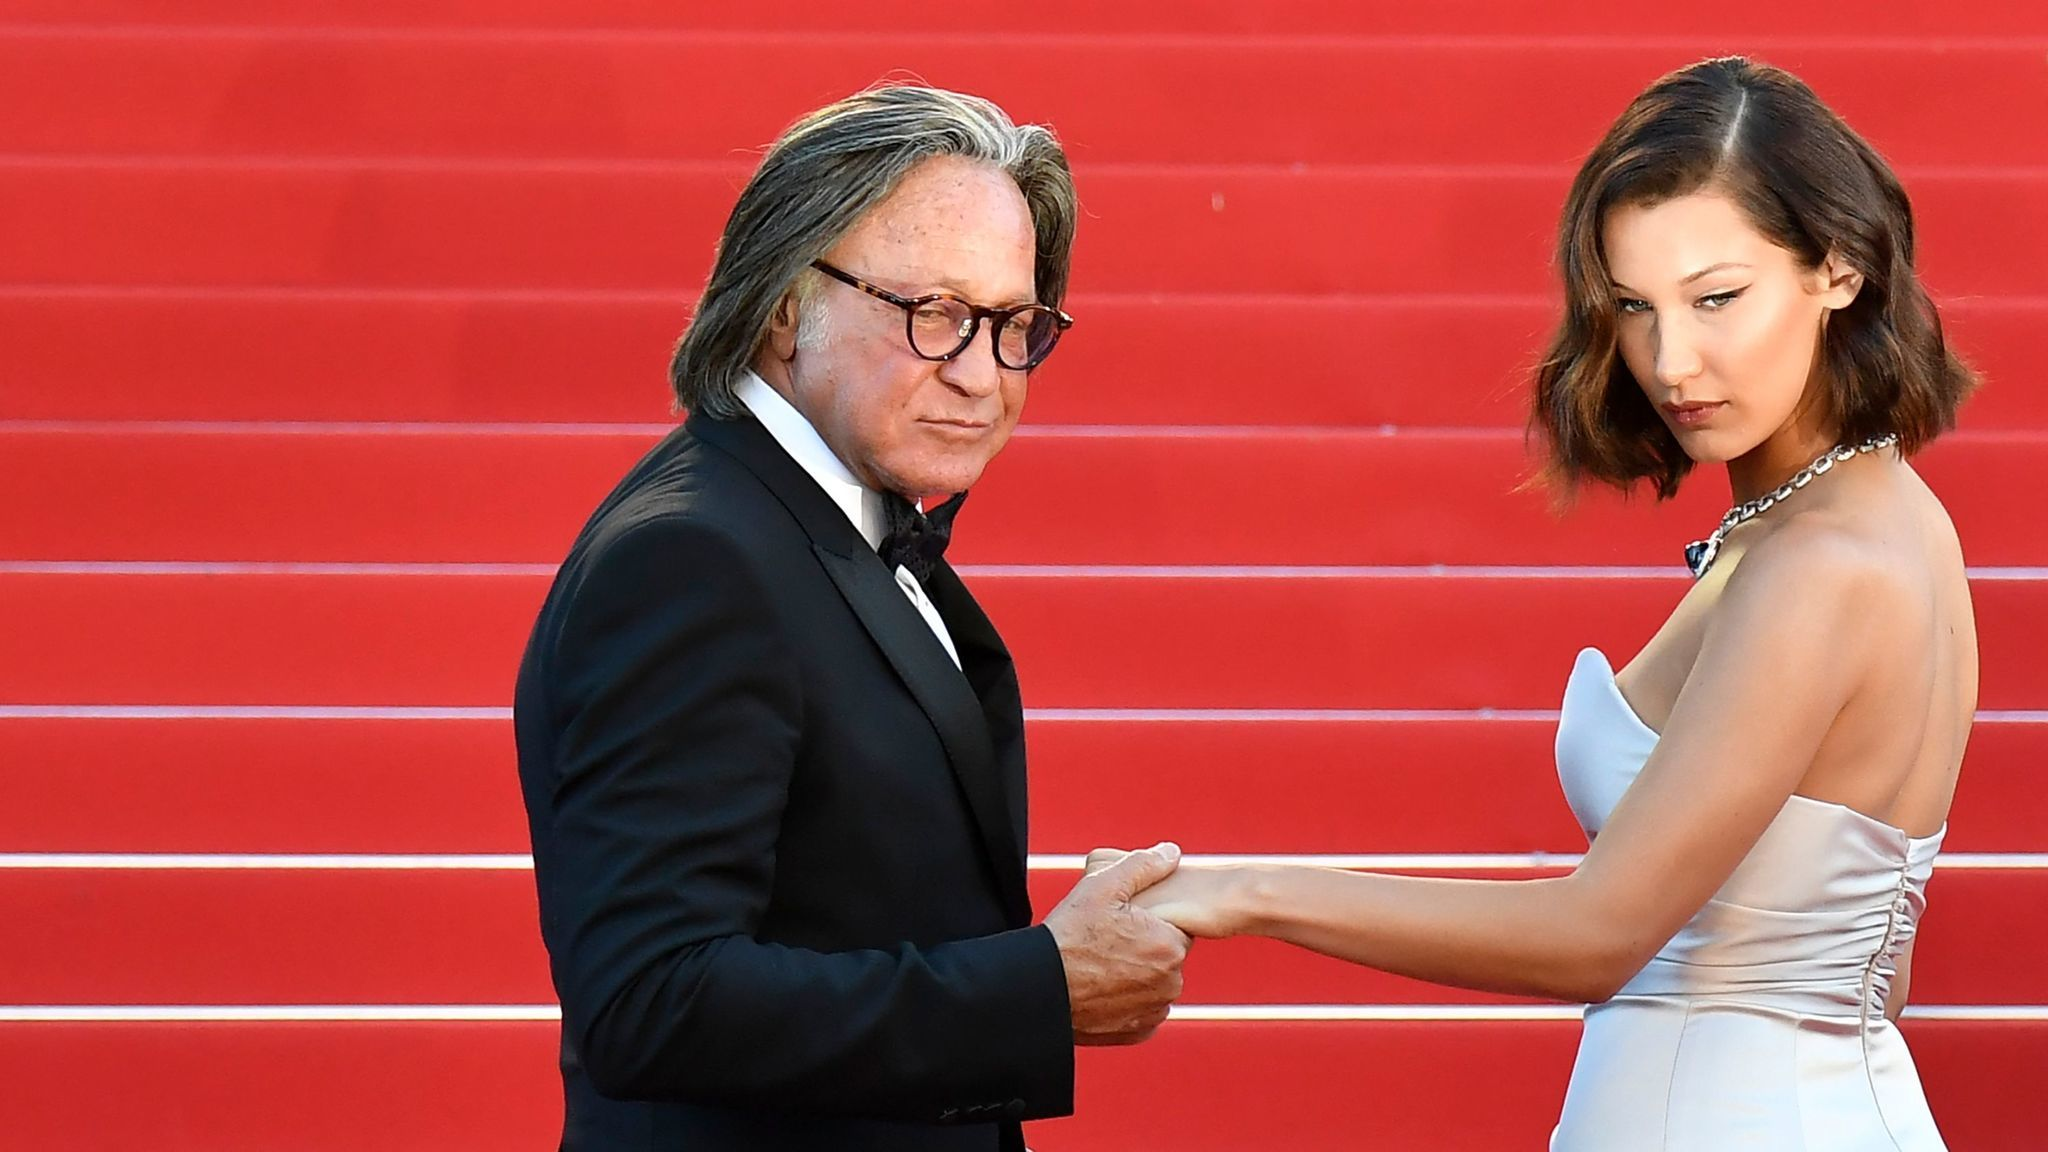 Mohamed Hadid and model Bella Hadid, his daughter, arrive for the screening of the film